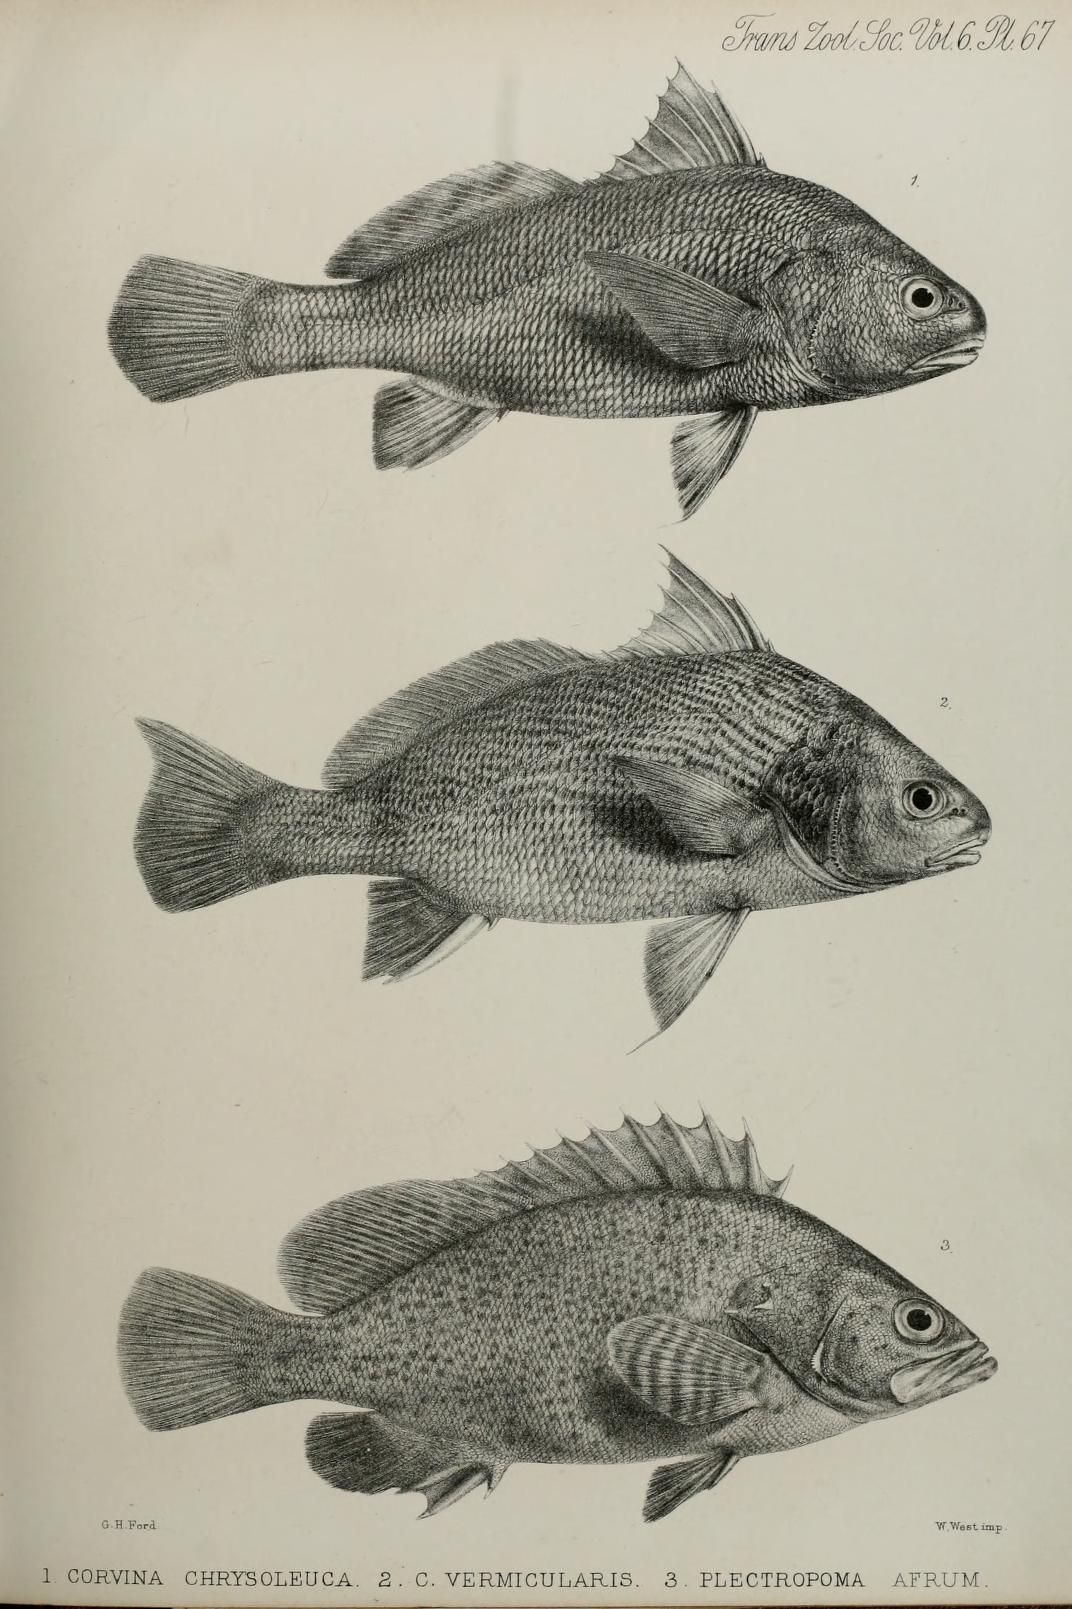 Transactions of the Zoological Society of London | Fish | Pinterest ...